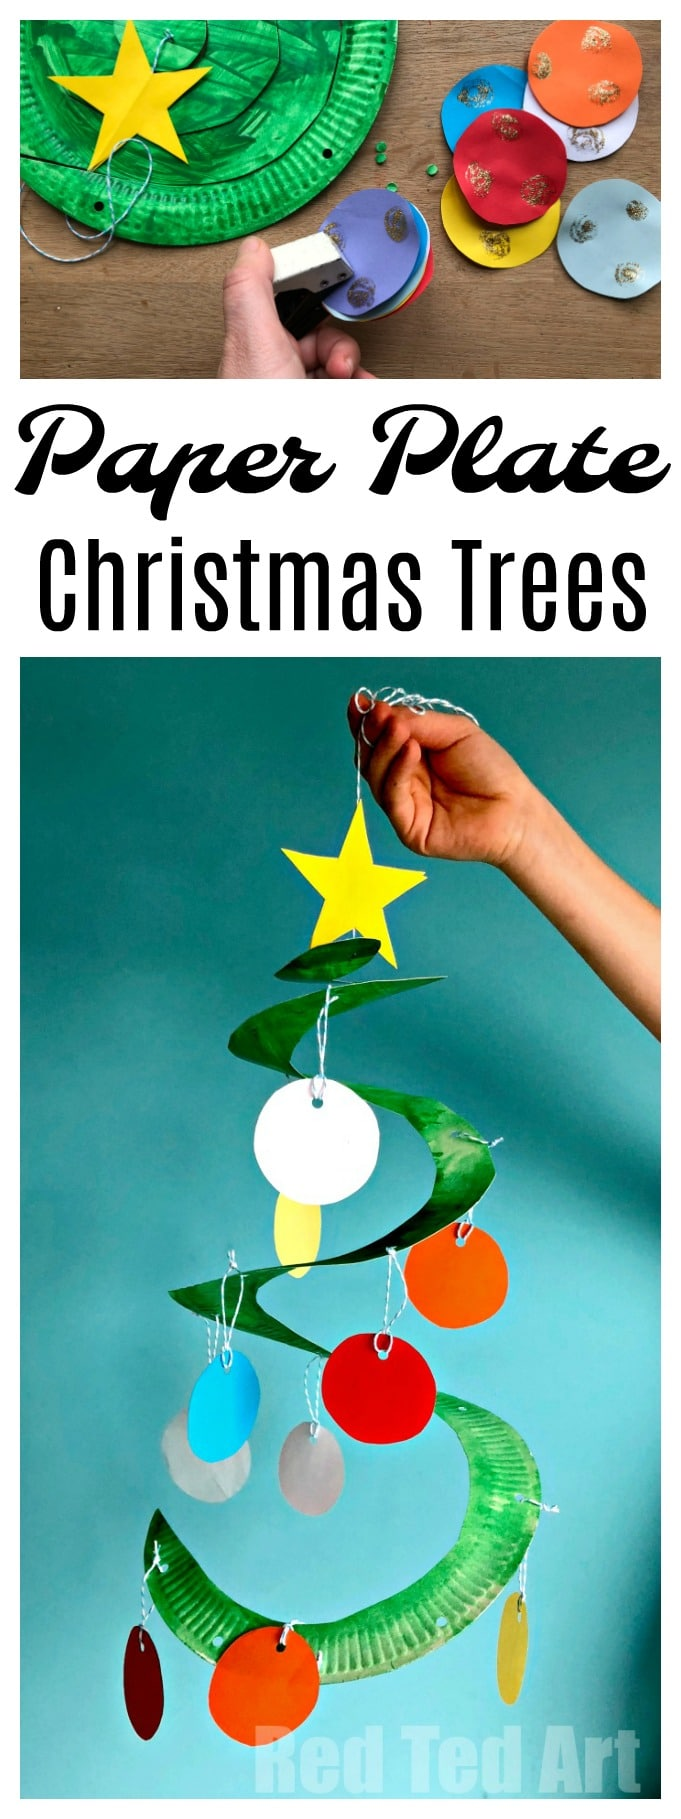 Paper Plate Christmas Tree Whirligig - Paper Plate Twirlers are a easy and fun to make and are a great classroom Christmas Decoration. They look fabulous at home. Paper Plate Christmas trees can also be made as collaborative project.. and we give tips to simplify the craft or extend it, depending on how much time you have. They are SUCH a pretty decoration for Christmas though.. I do hope you have a go. Fabulous Christmas Crafts for Preschoolers! #ChristmasTree #PaperPlate #PaperplateChristmasTree #ChristmasPaperplate #Preschool